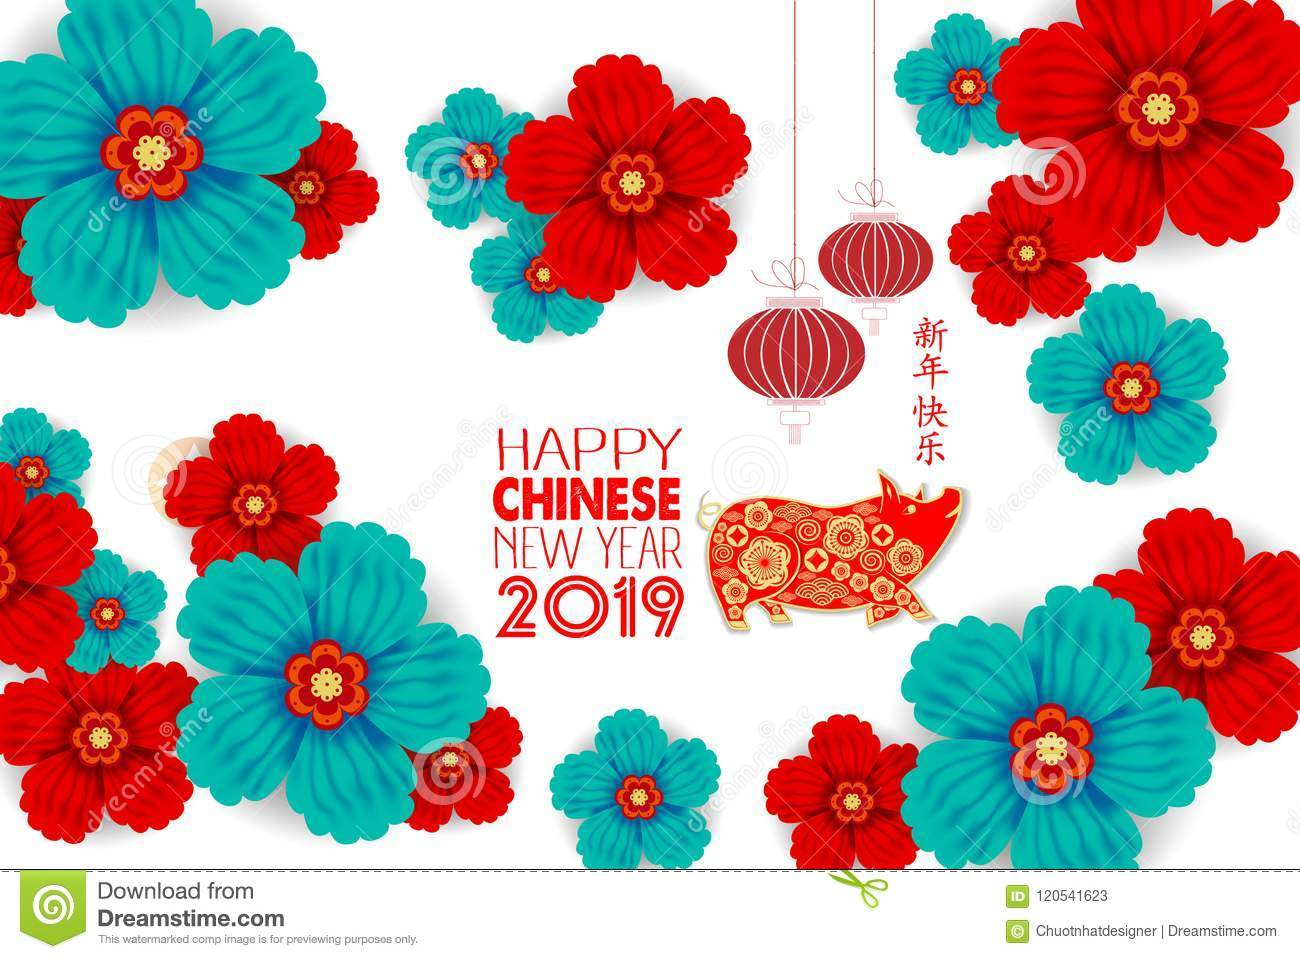 happy chinese new year 2019 year of the pig chinese characters mean happy new year wealthy zodiac sign for greetings card flyers invitation posters